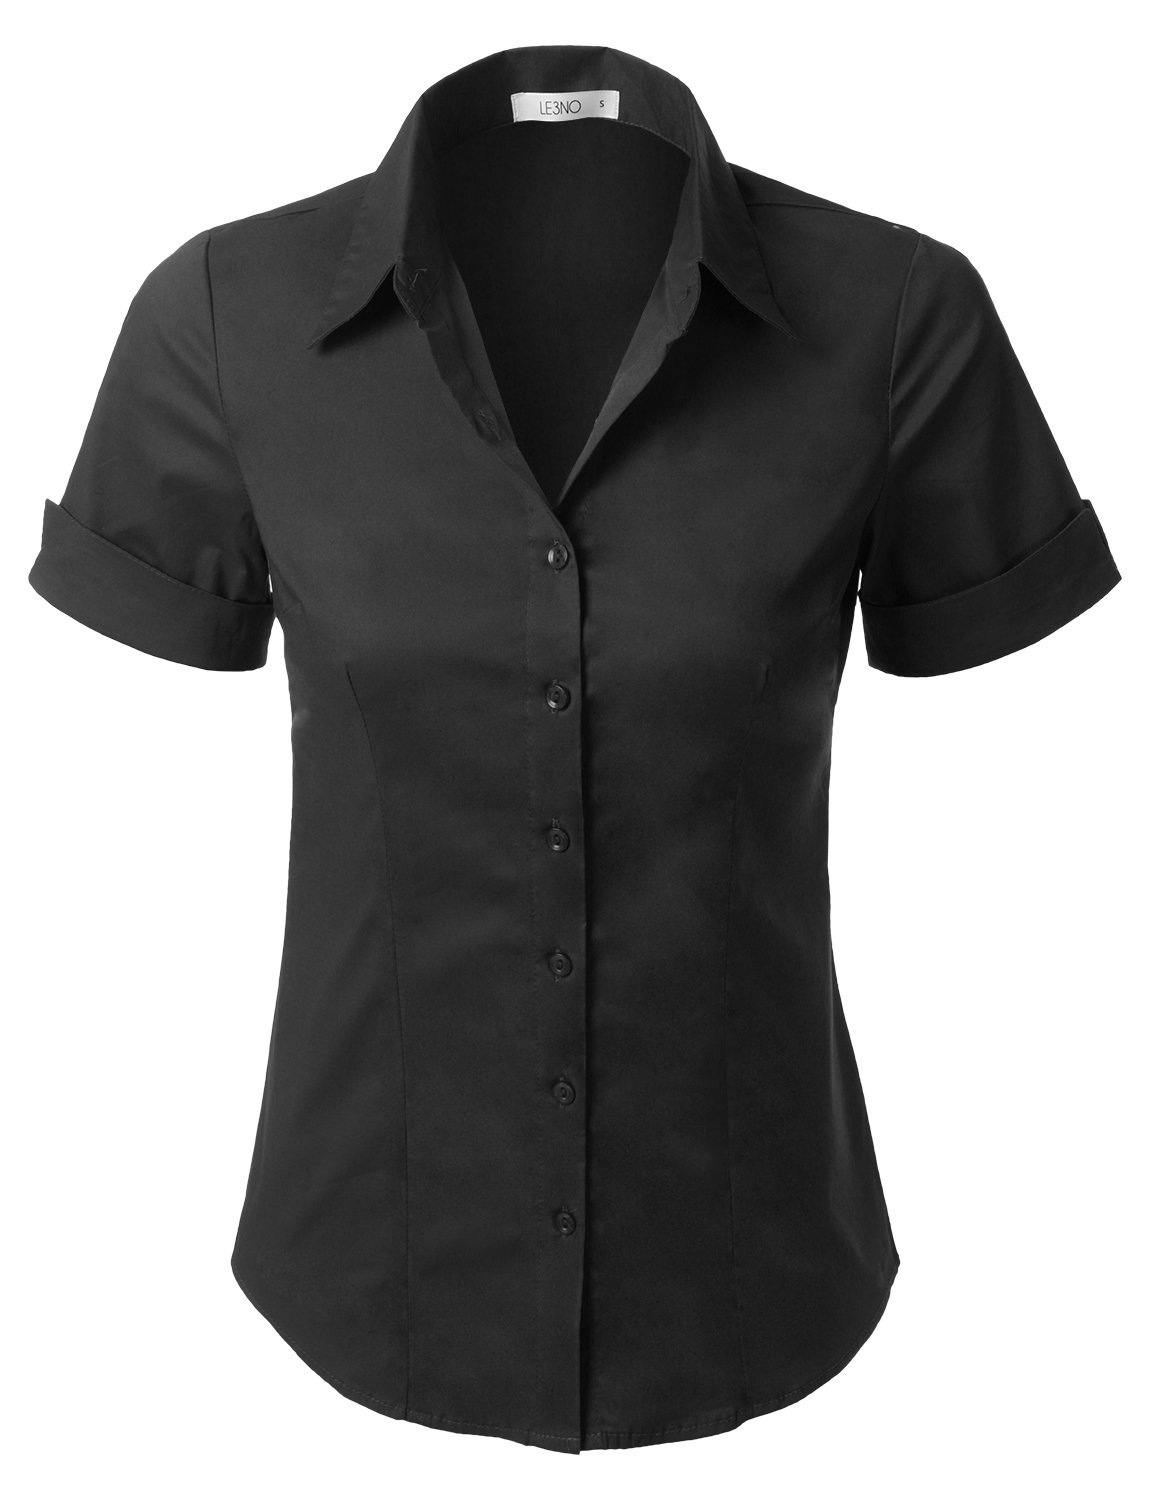 LE3NO Womens Short Sleeve Button Down Shirt With Stretch,L3nwt575a_black,Large